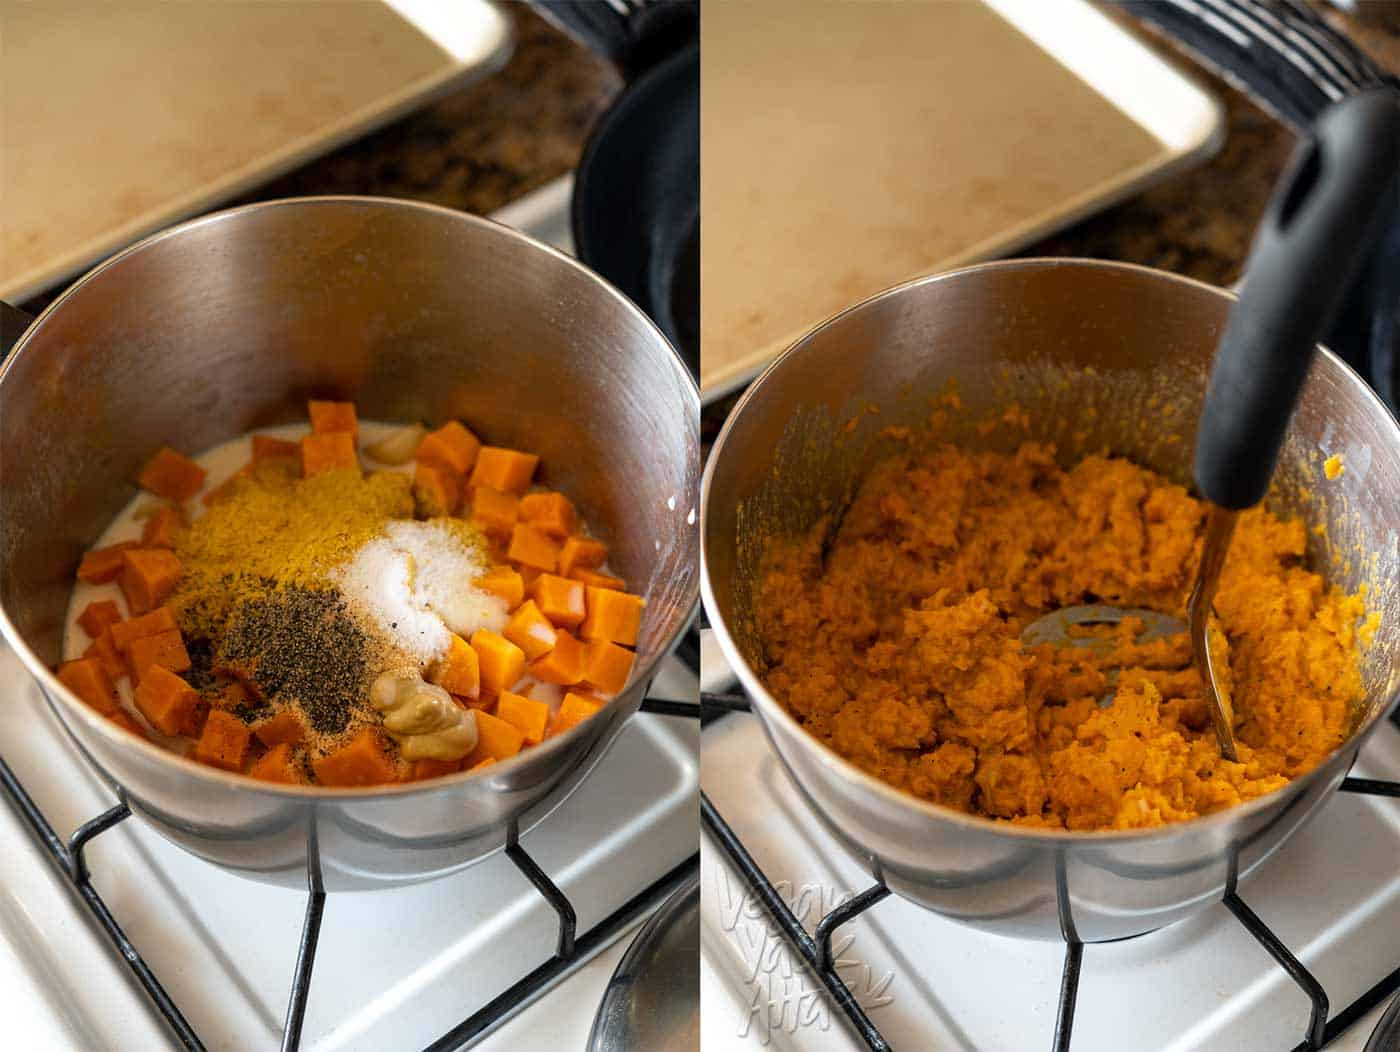 Images of sweet potato filling being made in a pot